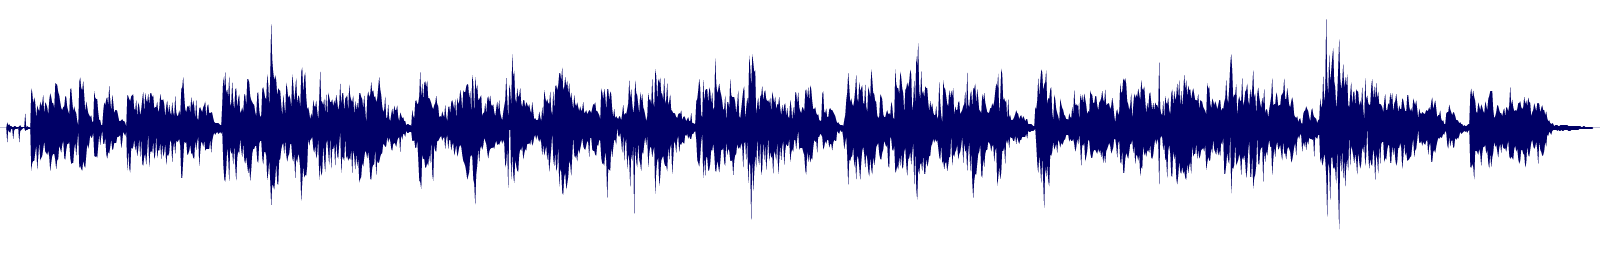 waveform of track #148988